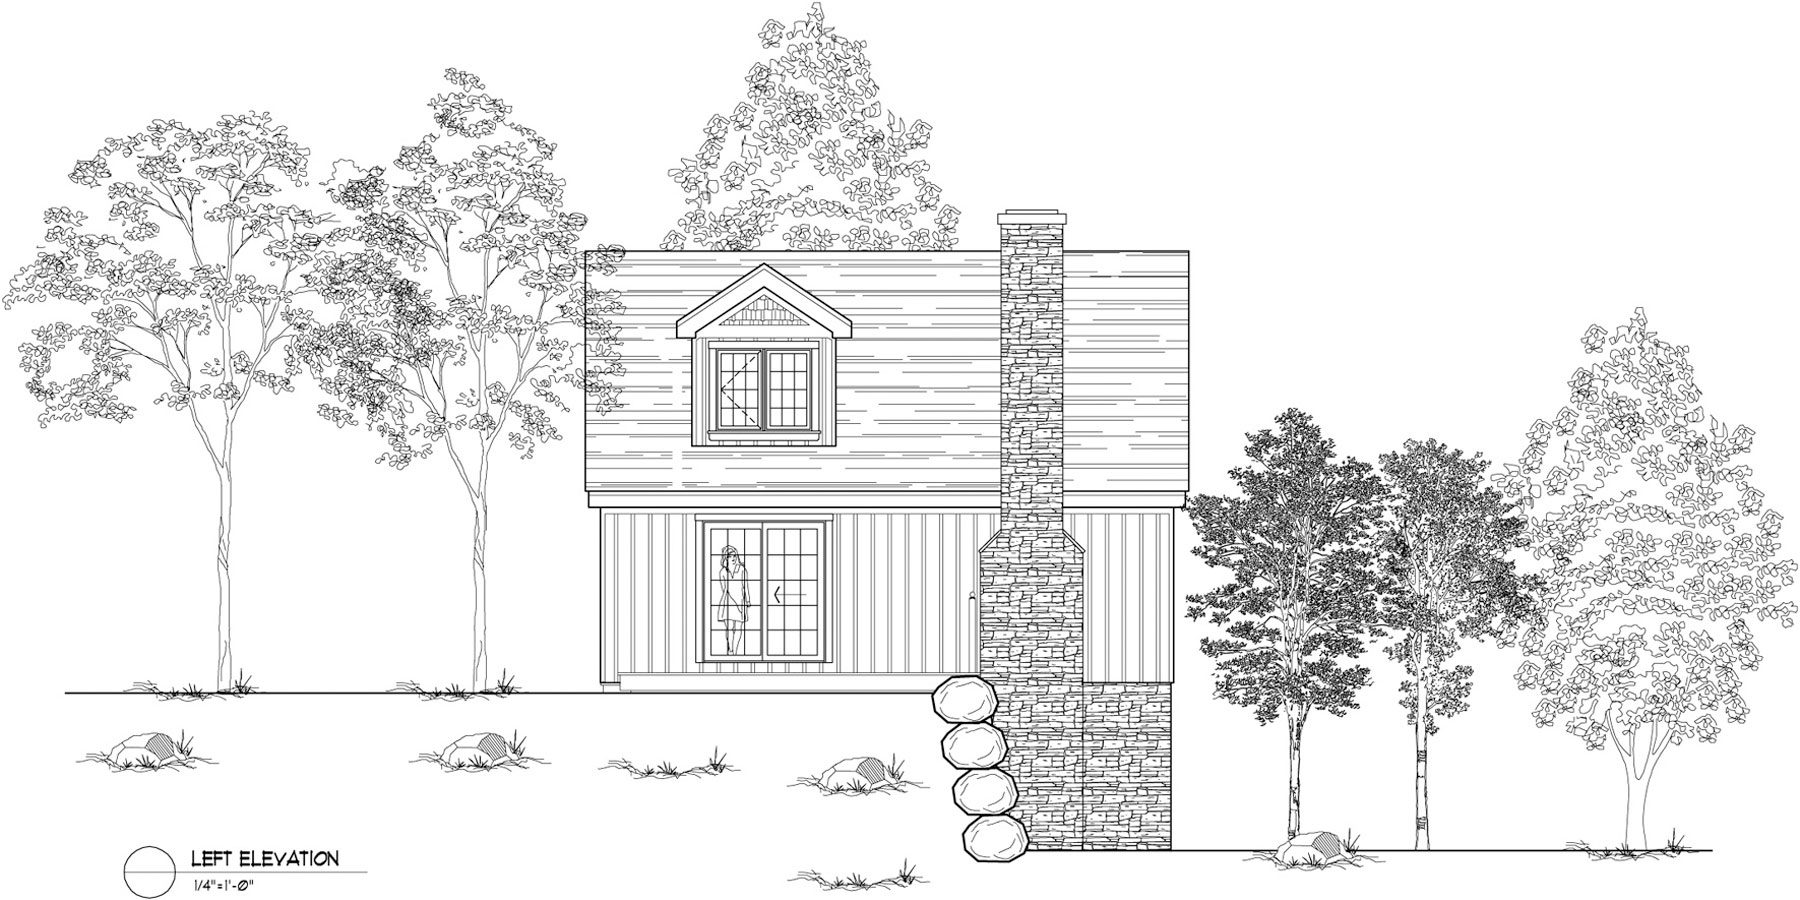 Normerica Timber Frames, House Plan, The Simcoe 3239, Left Elevation